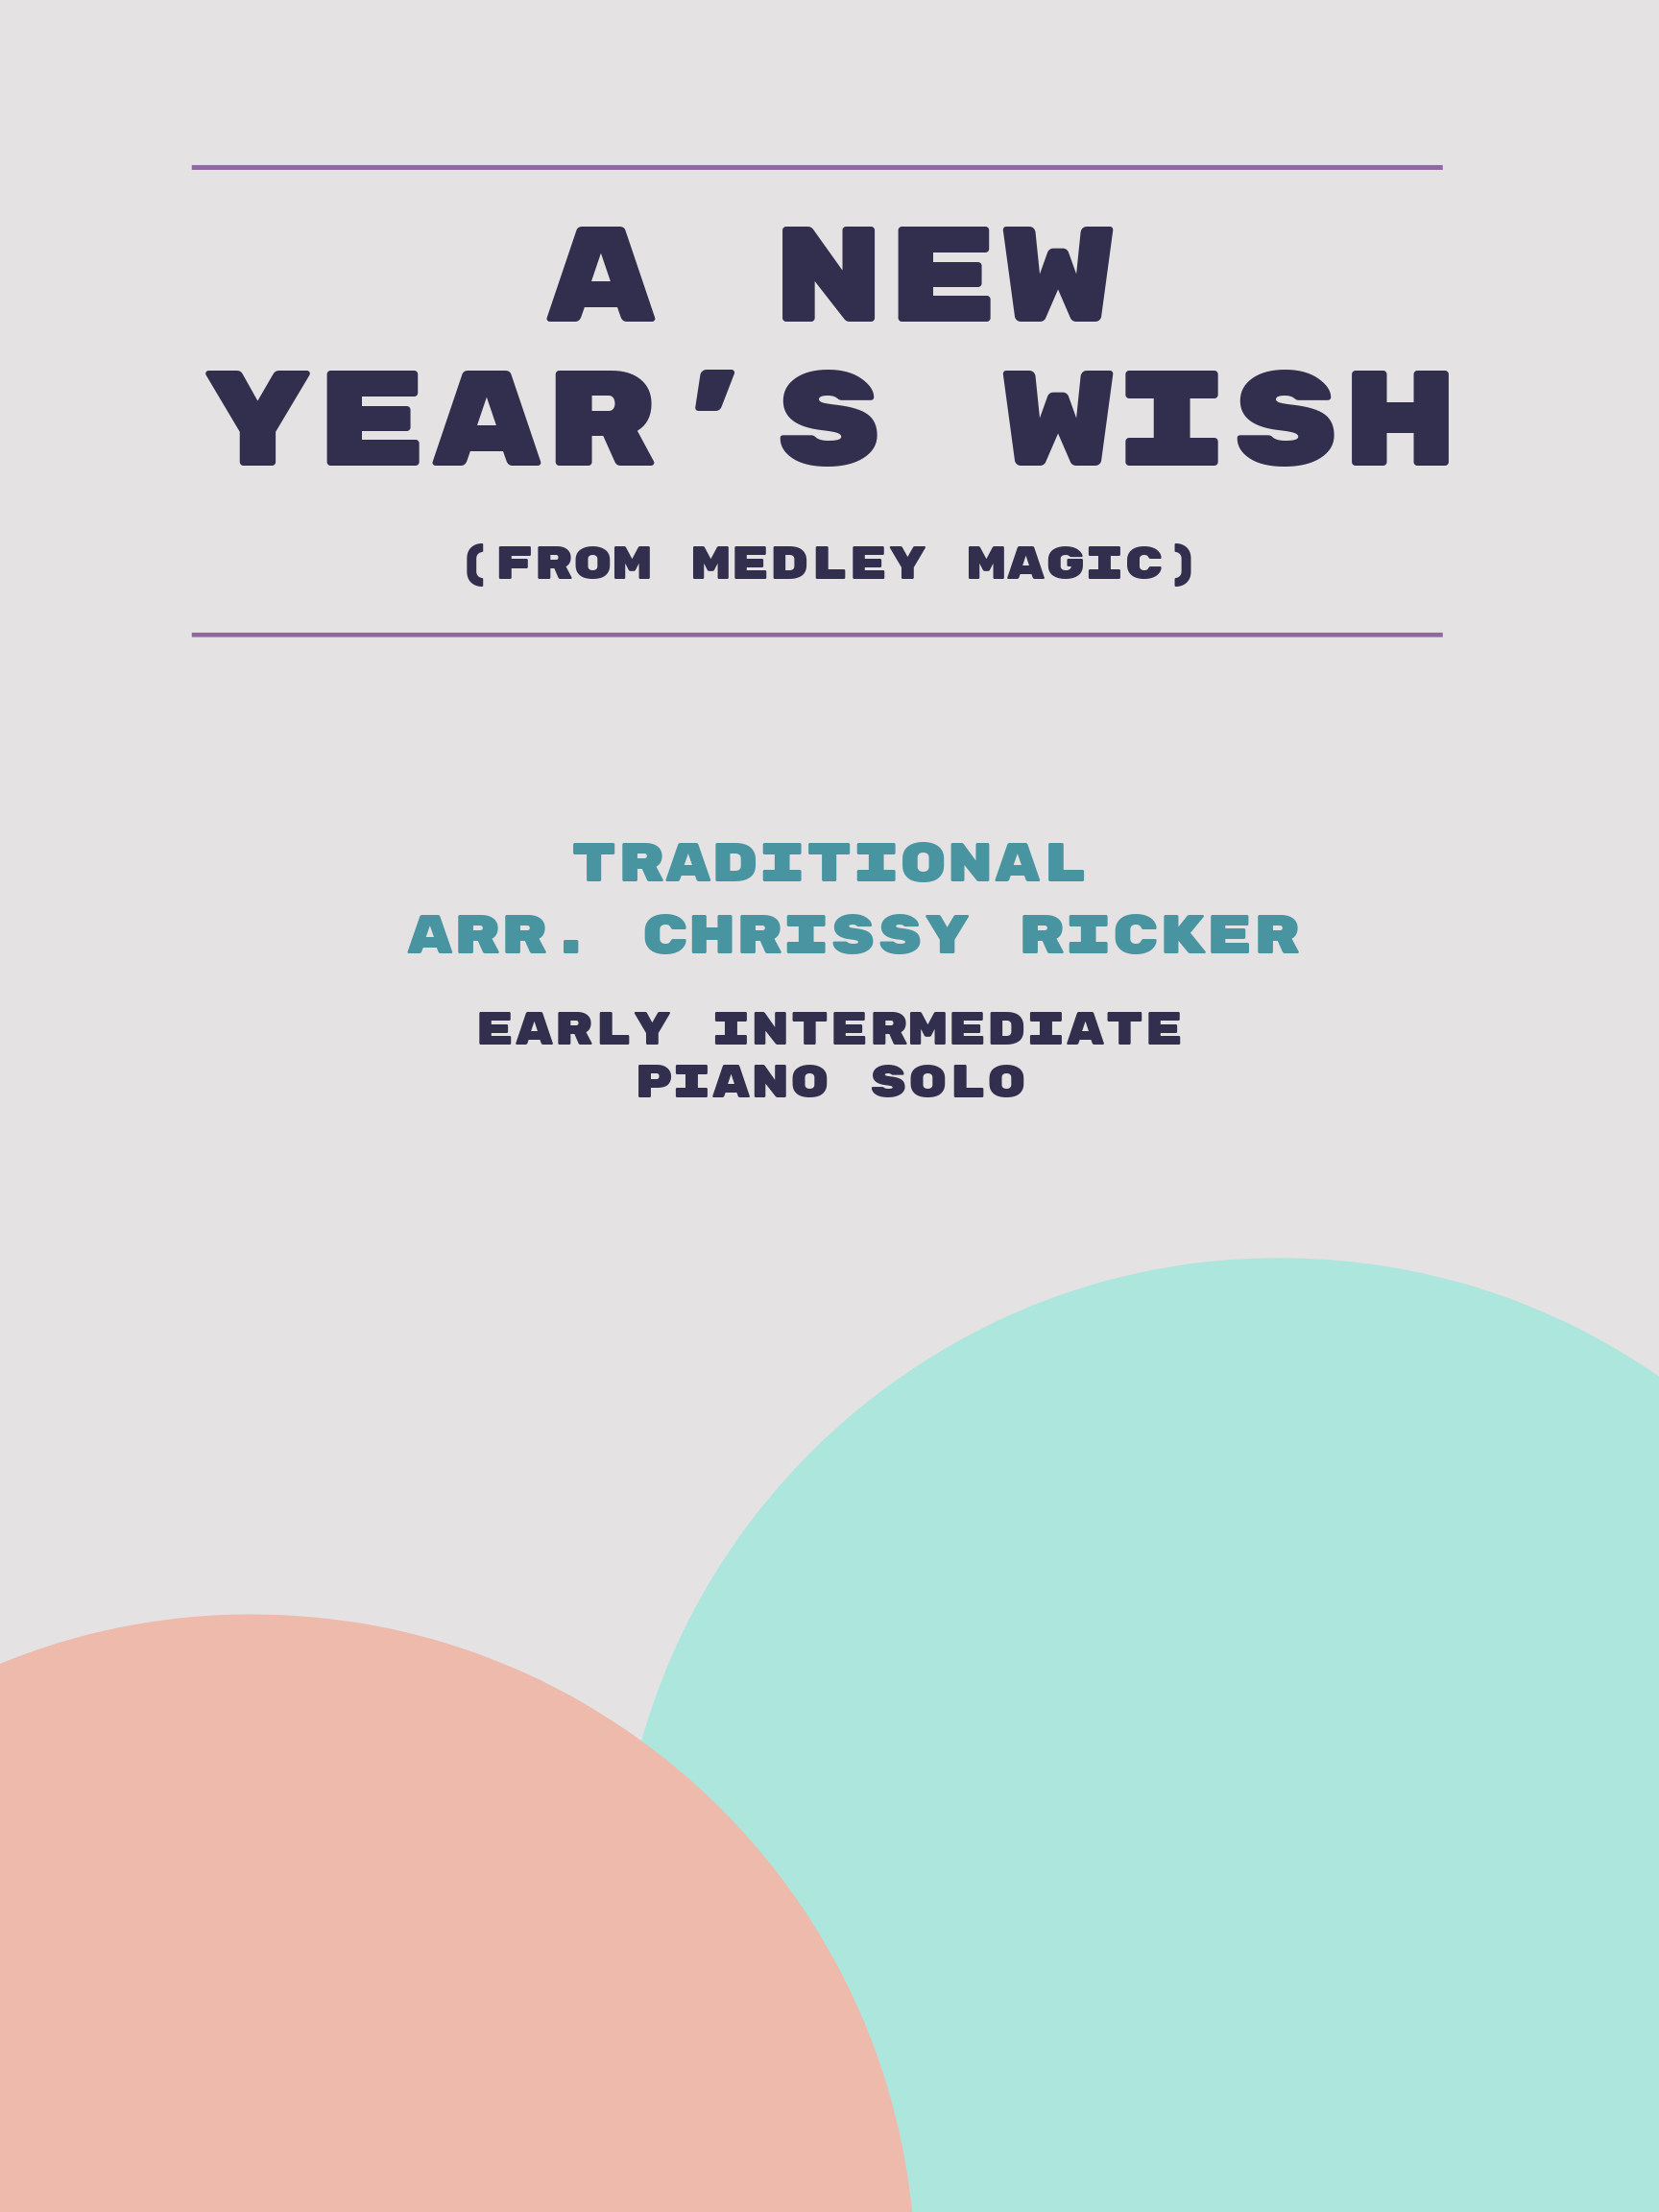 A New Year's Wish by Traditional